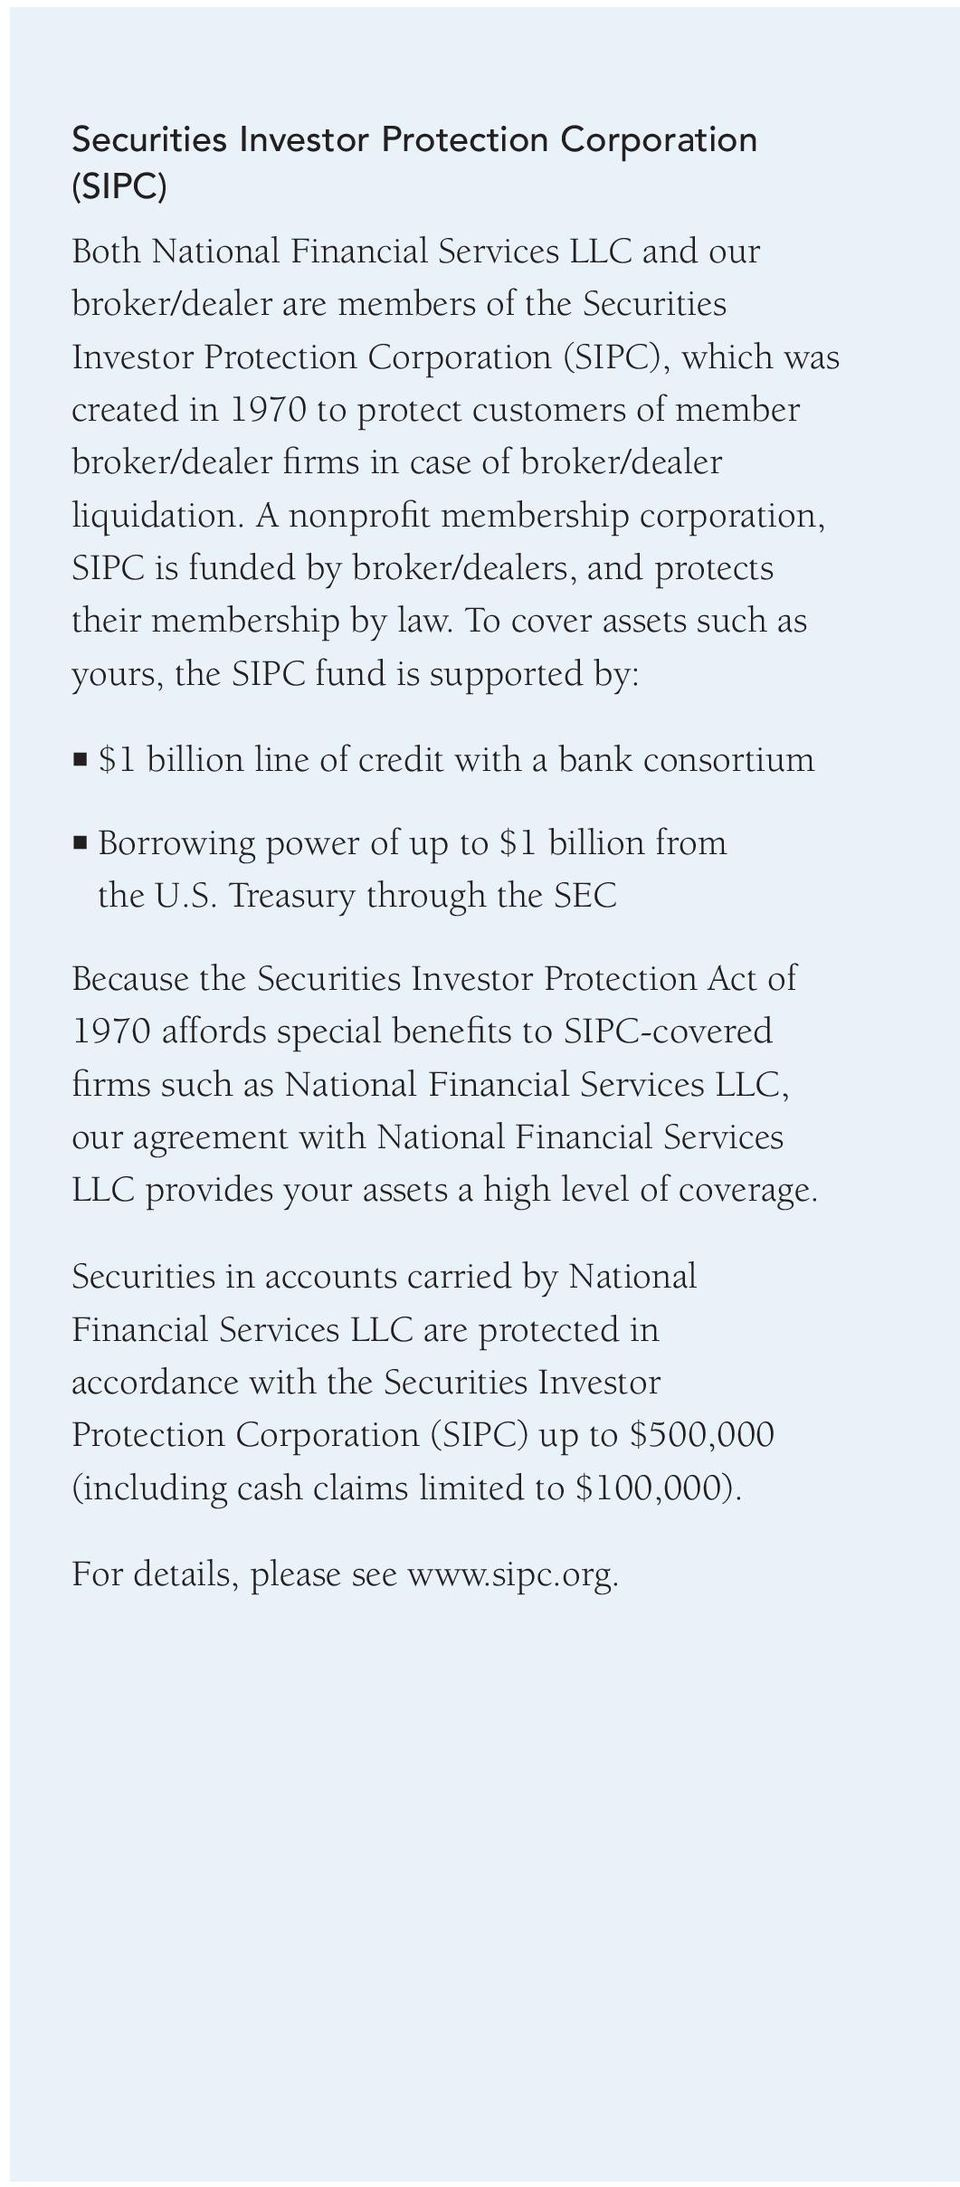 A nonprofit membership corporation, SIPC is funded by broker/dealers, and protects their membership by law.